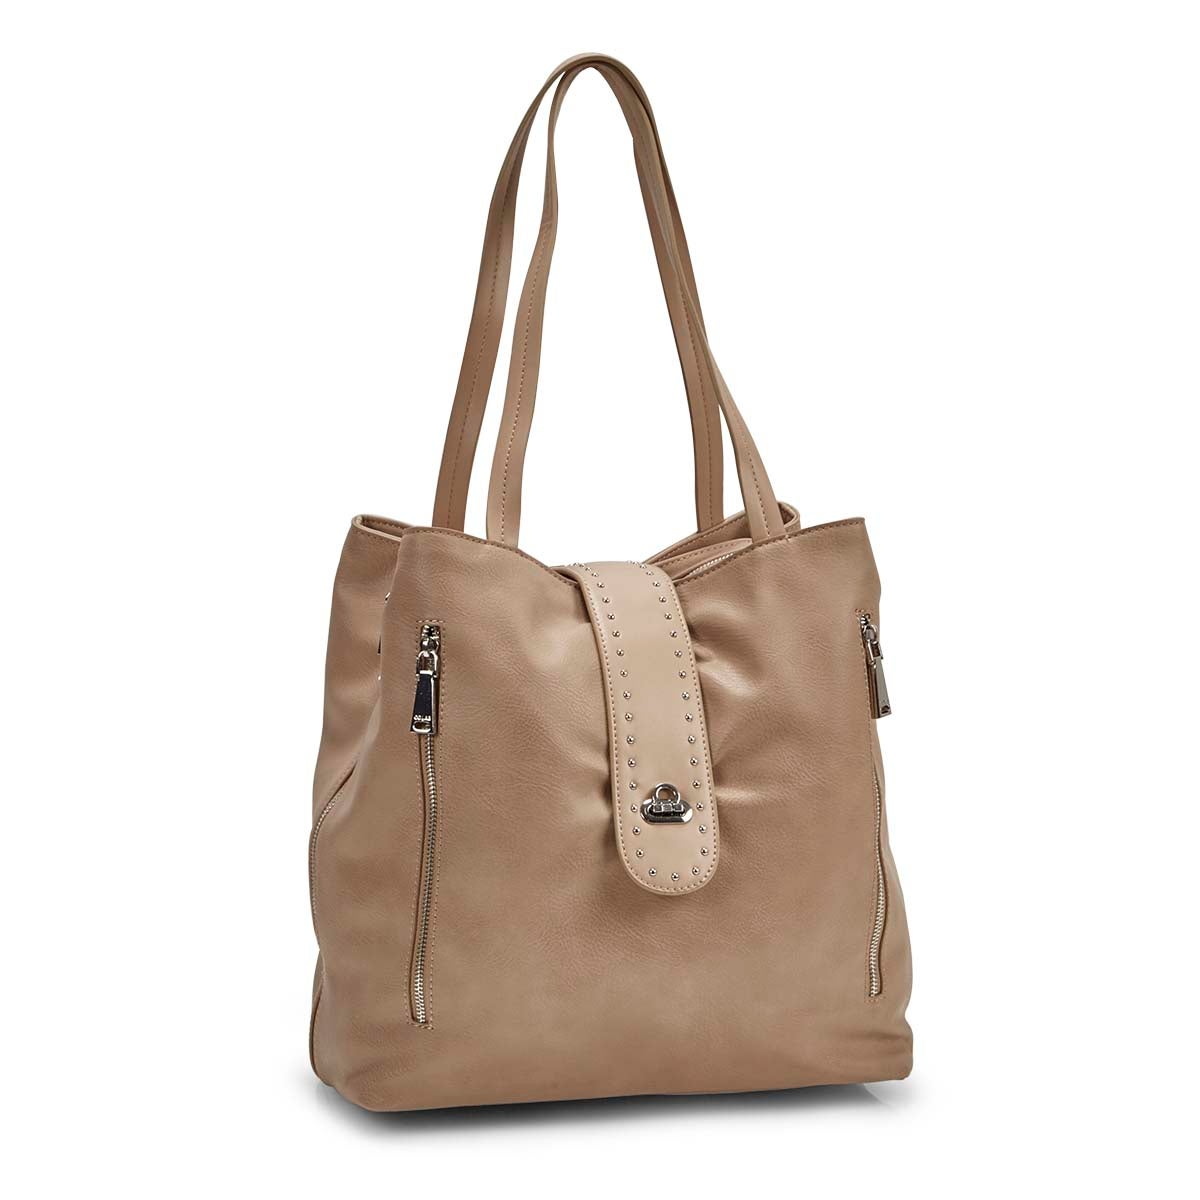 Women's DAISY baked blush tote bag